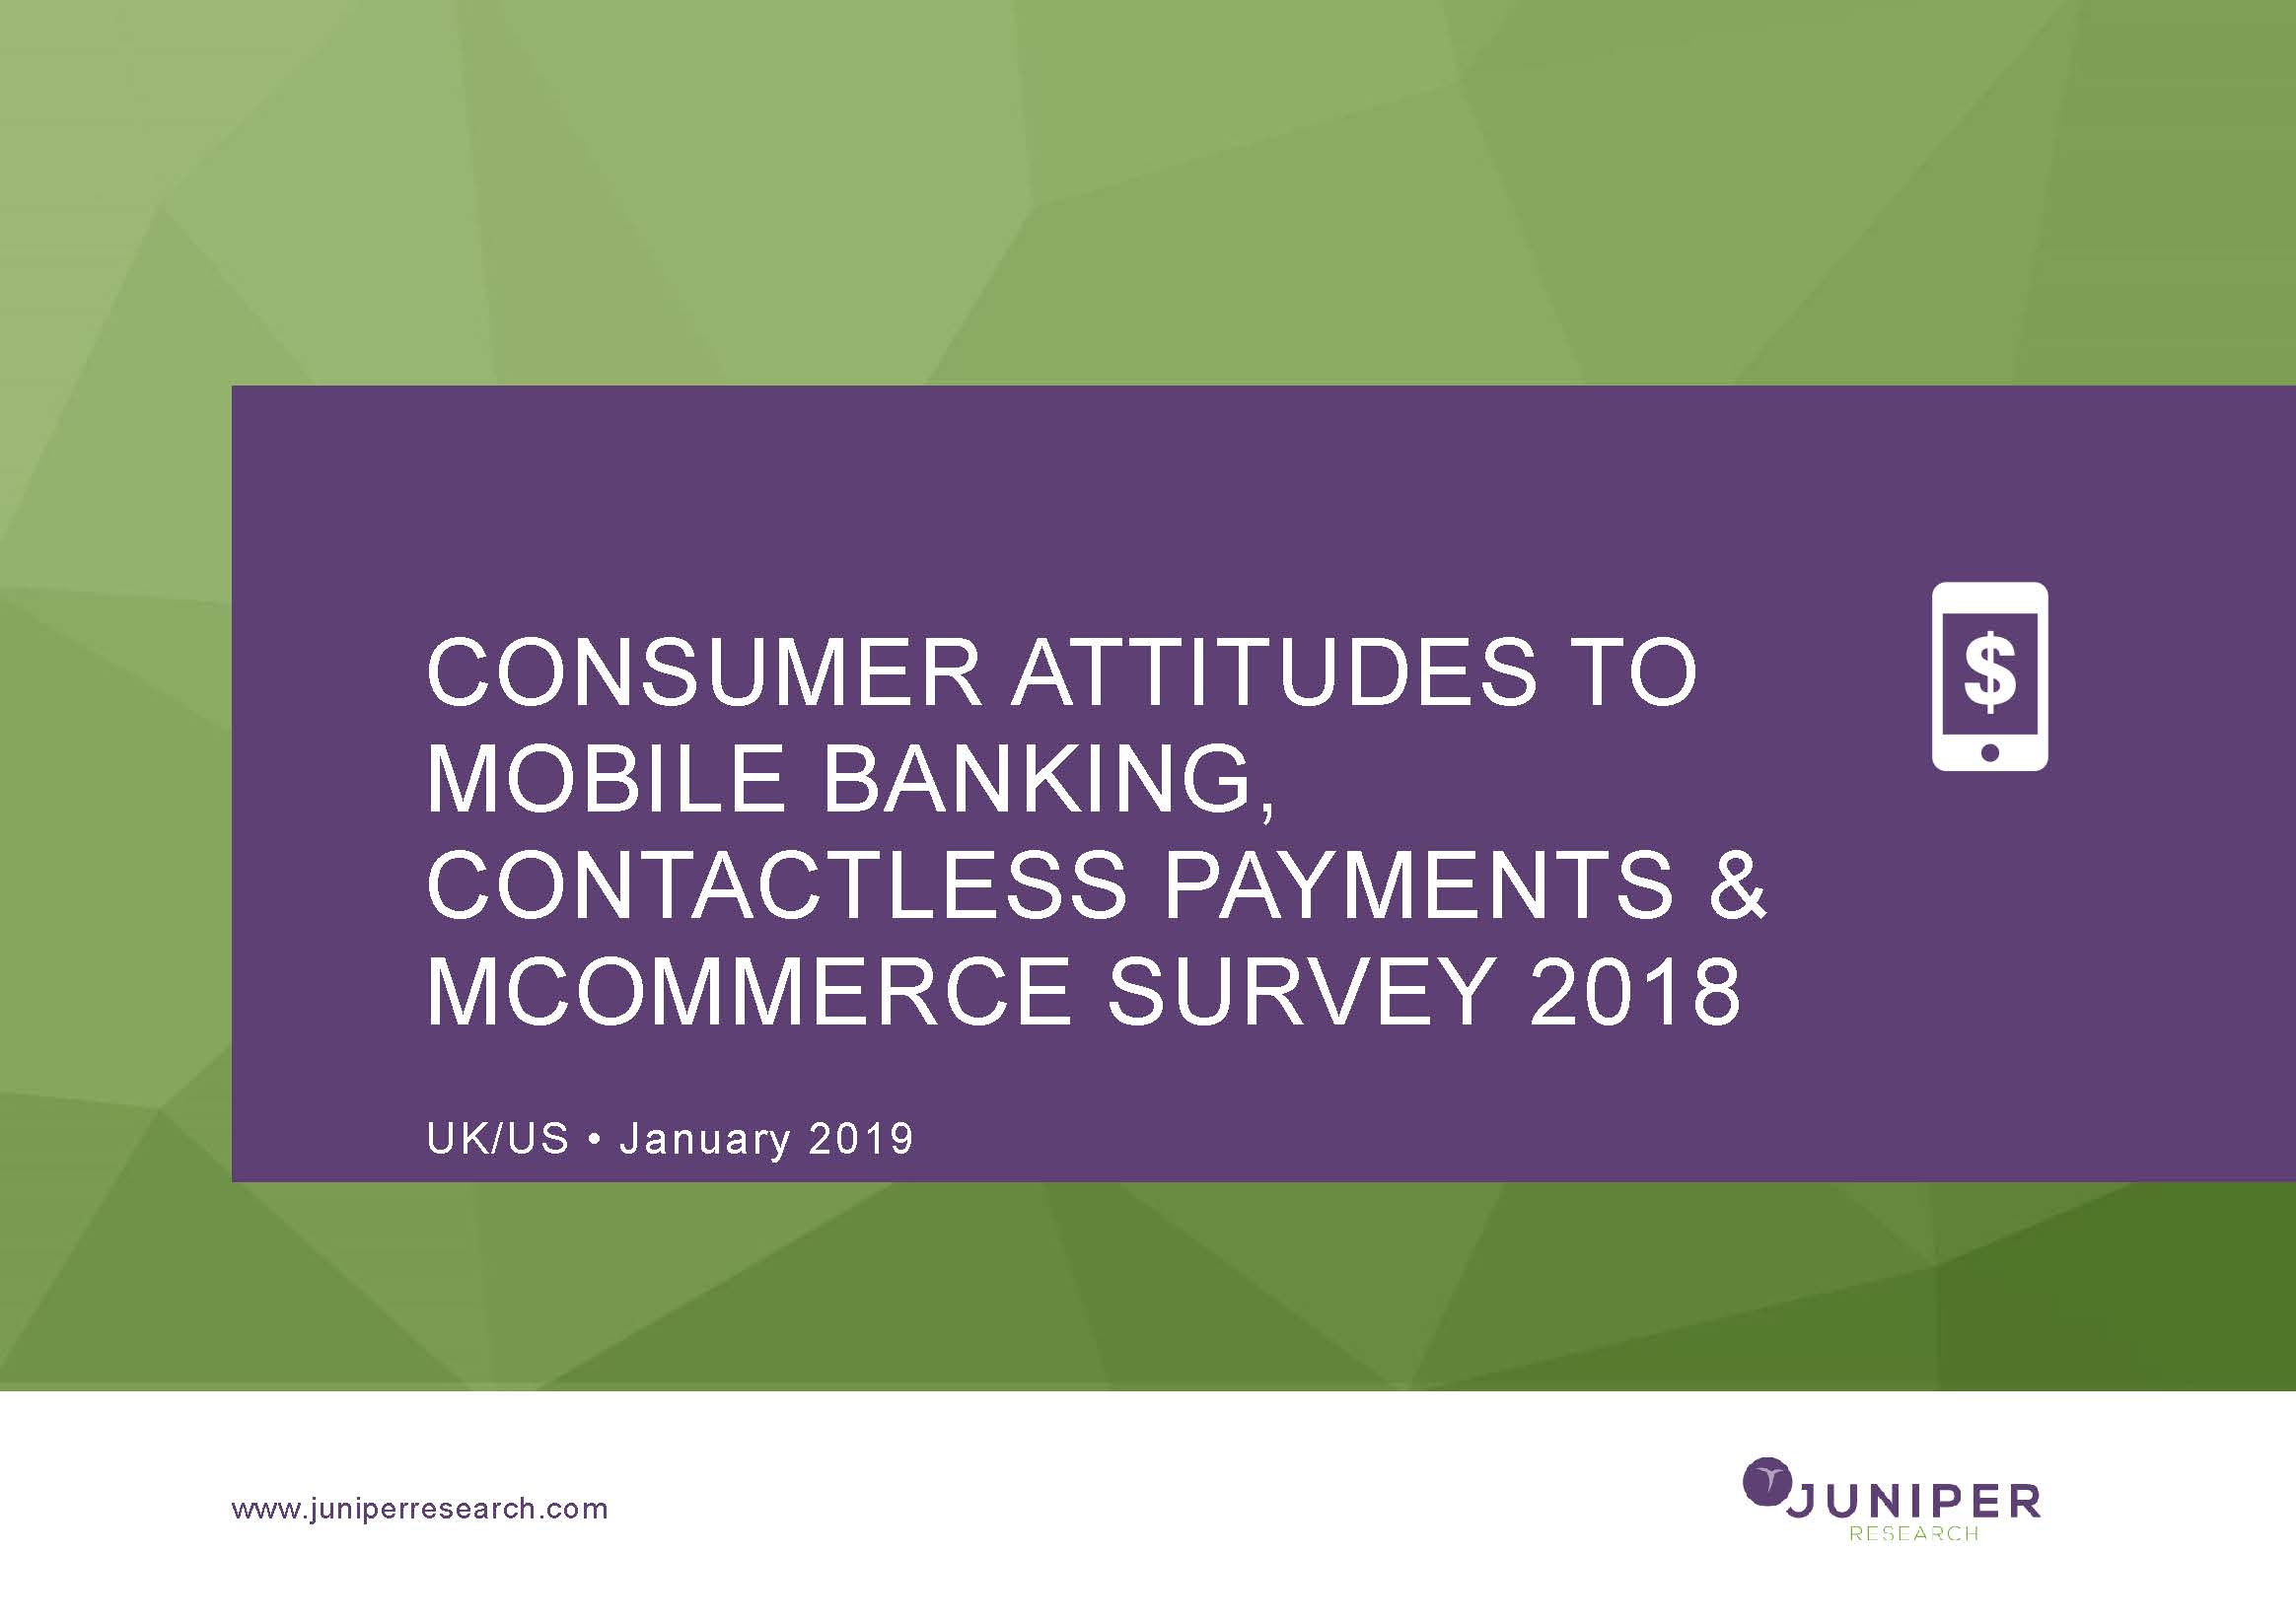 Consumer Attitudes to Mobile Banking, Contactless Payments & mCommerce January 2019 Survey: UK/US